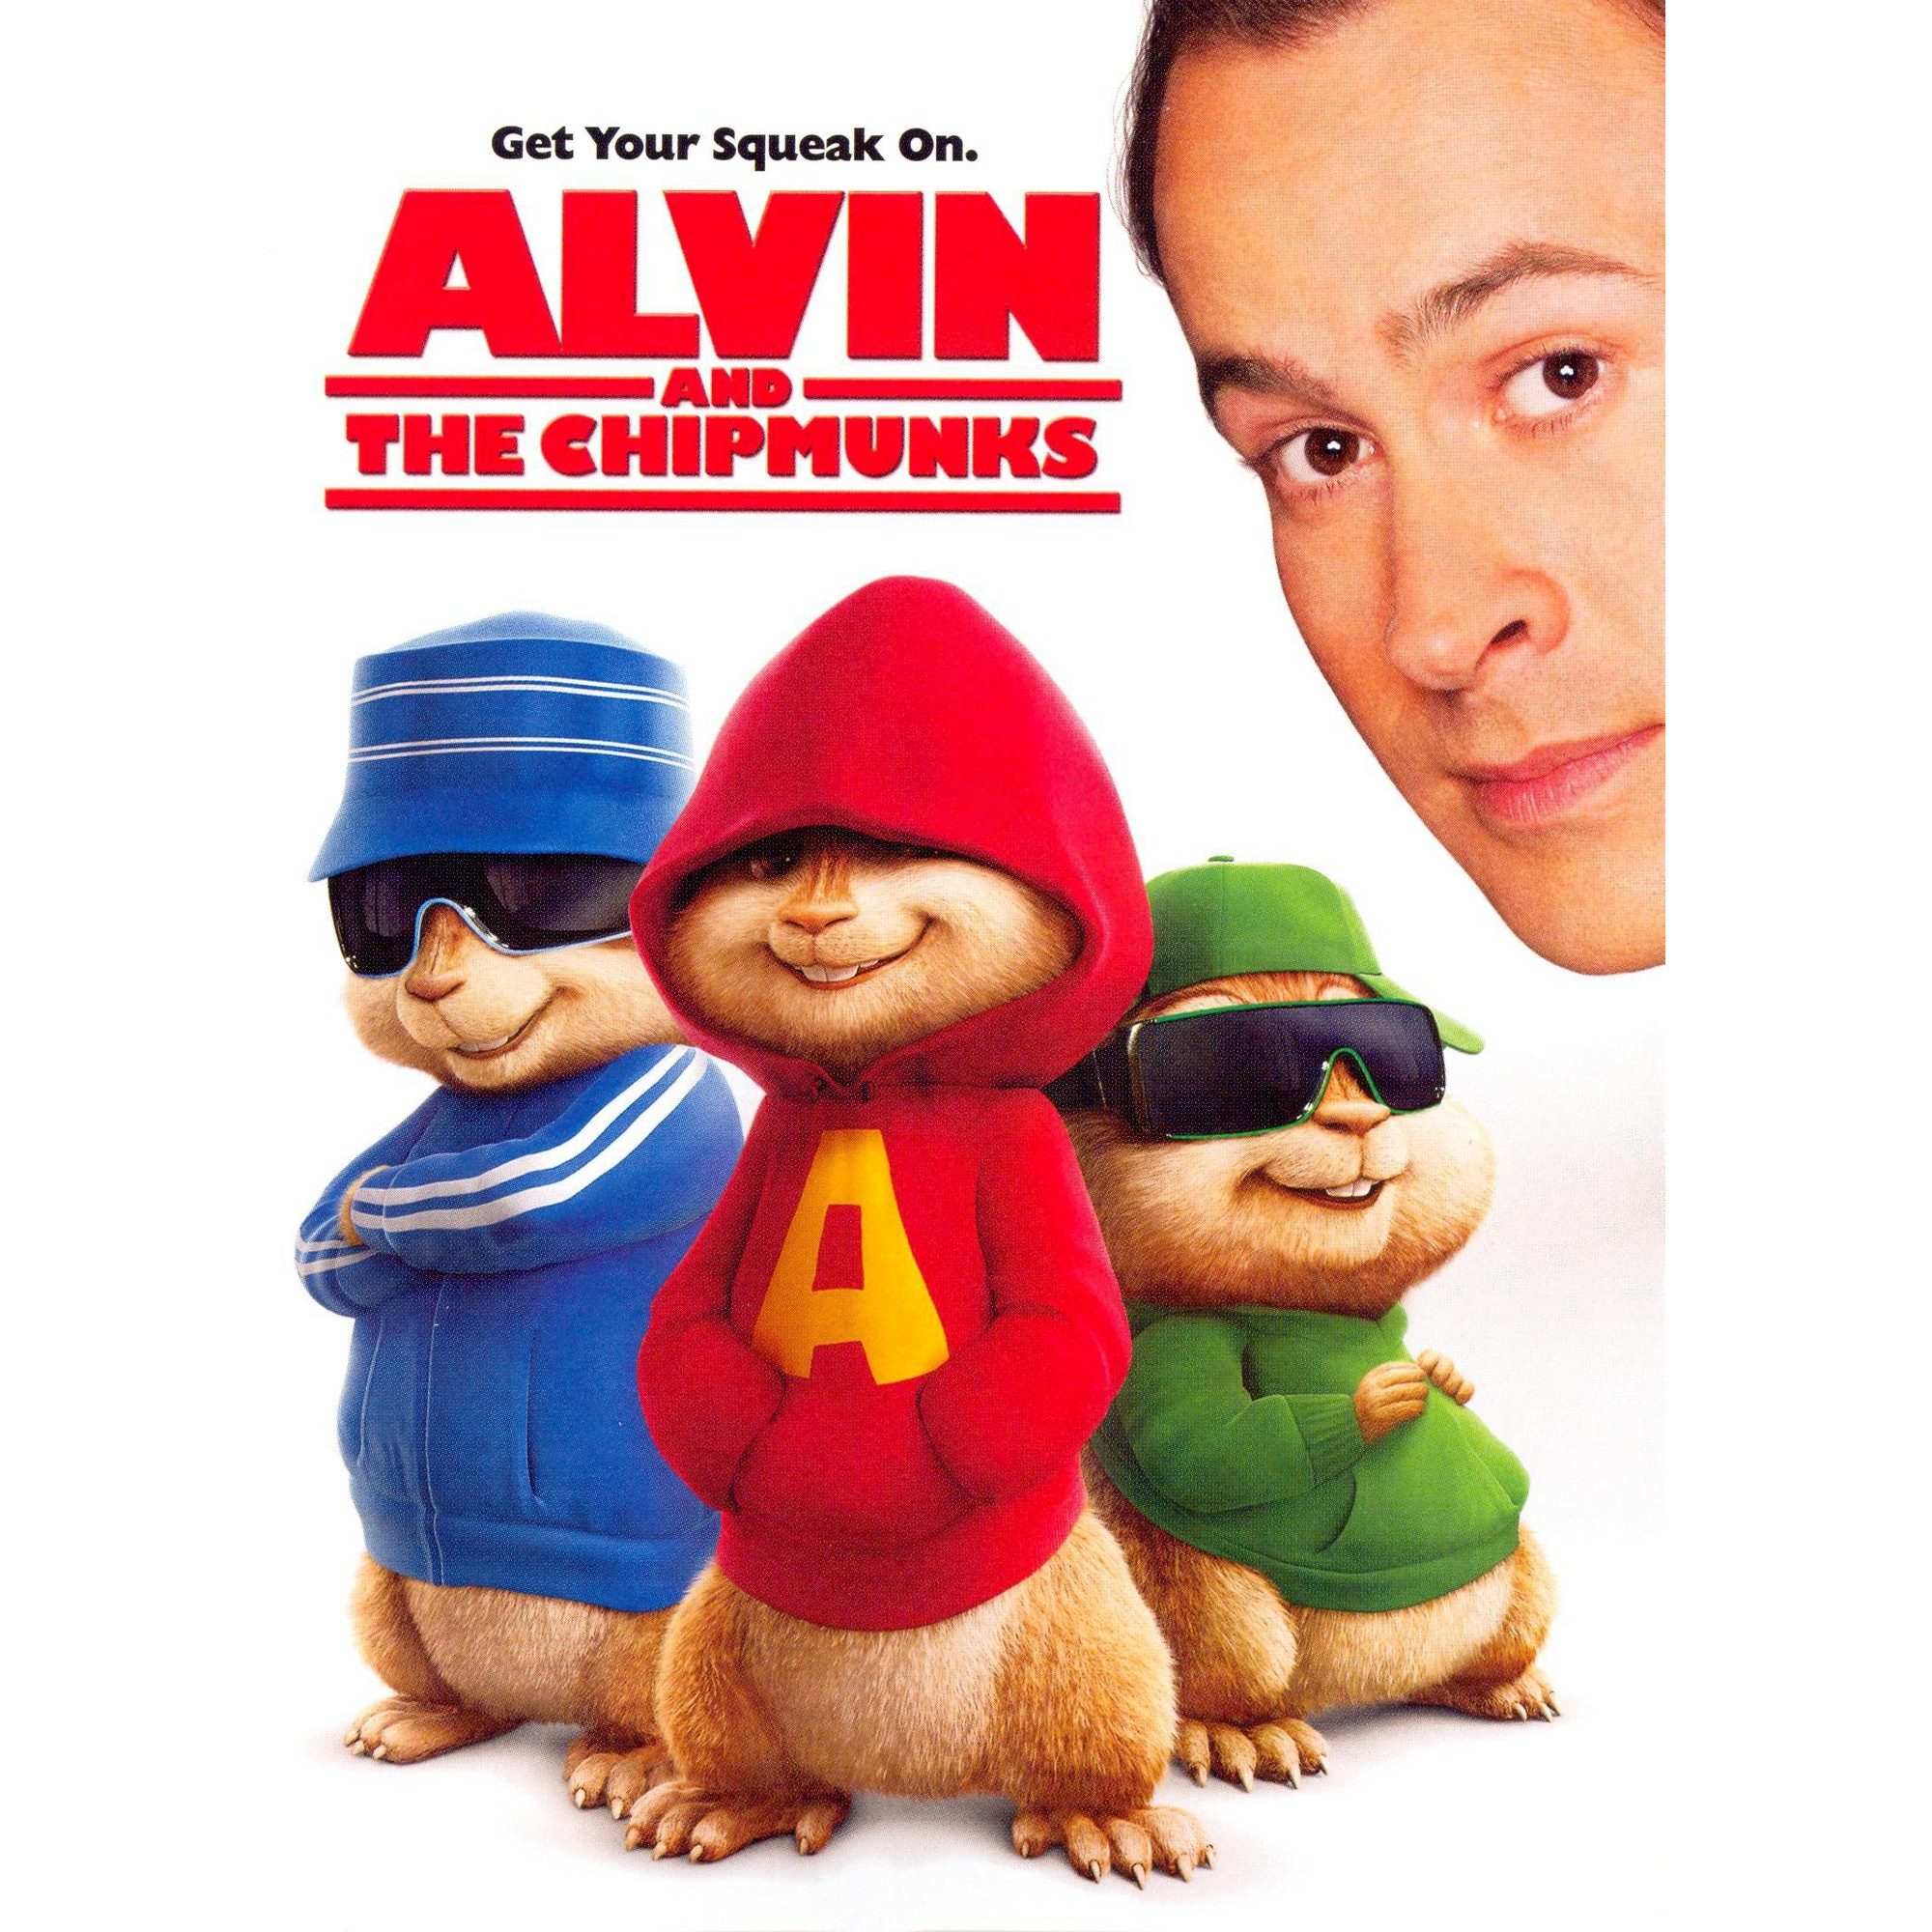 Alvin And The Chipmunks Christmas.Alvin And The Chipmunks Dvd Video In 2019 Products